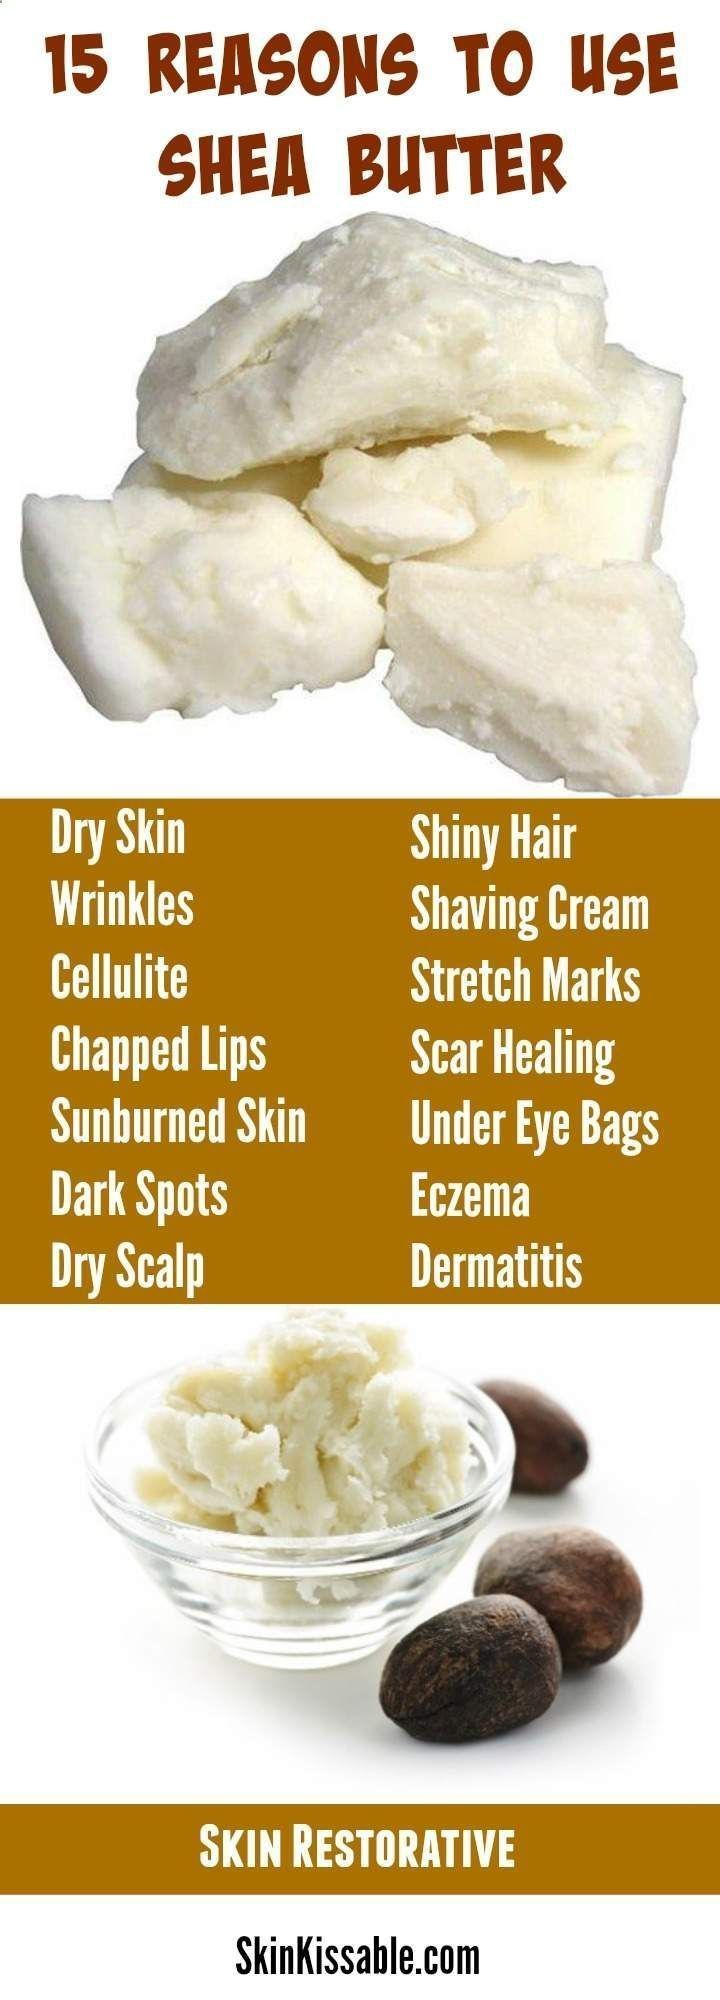 Shea Butter benefits and uses in skin care. Shea Butter DIY recipes for hair and...